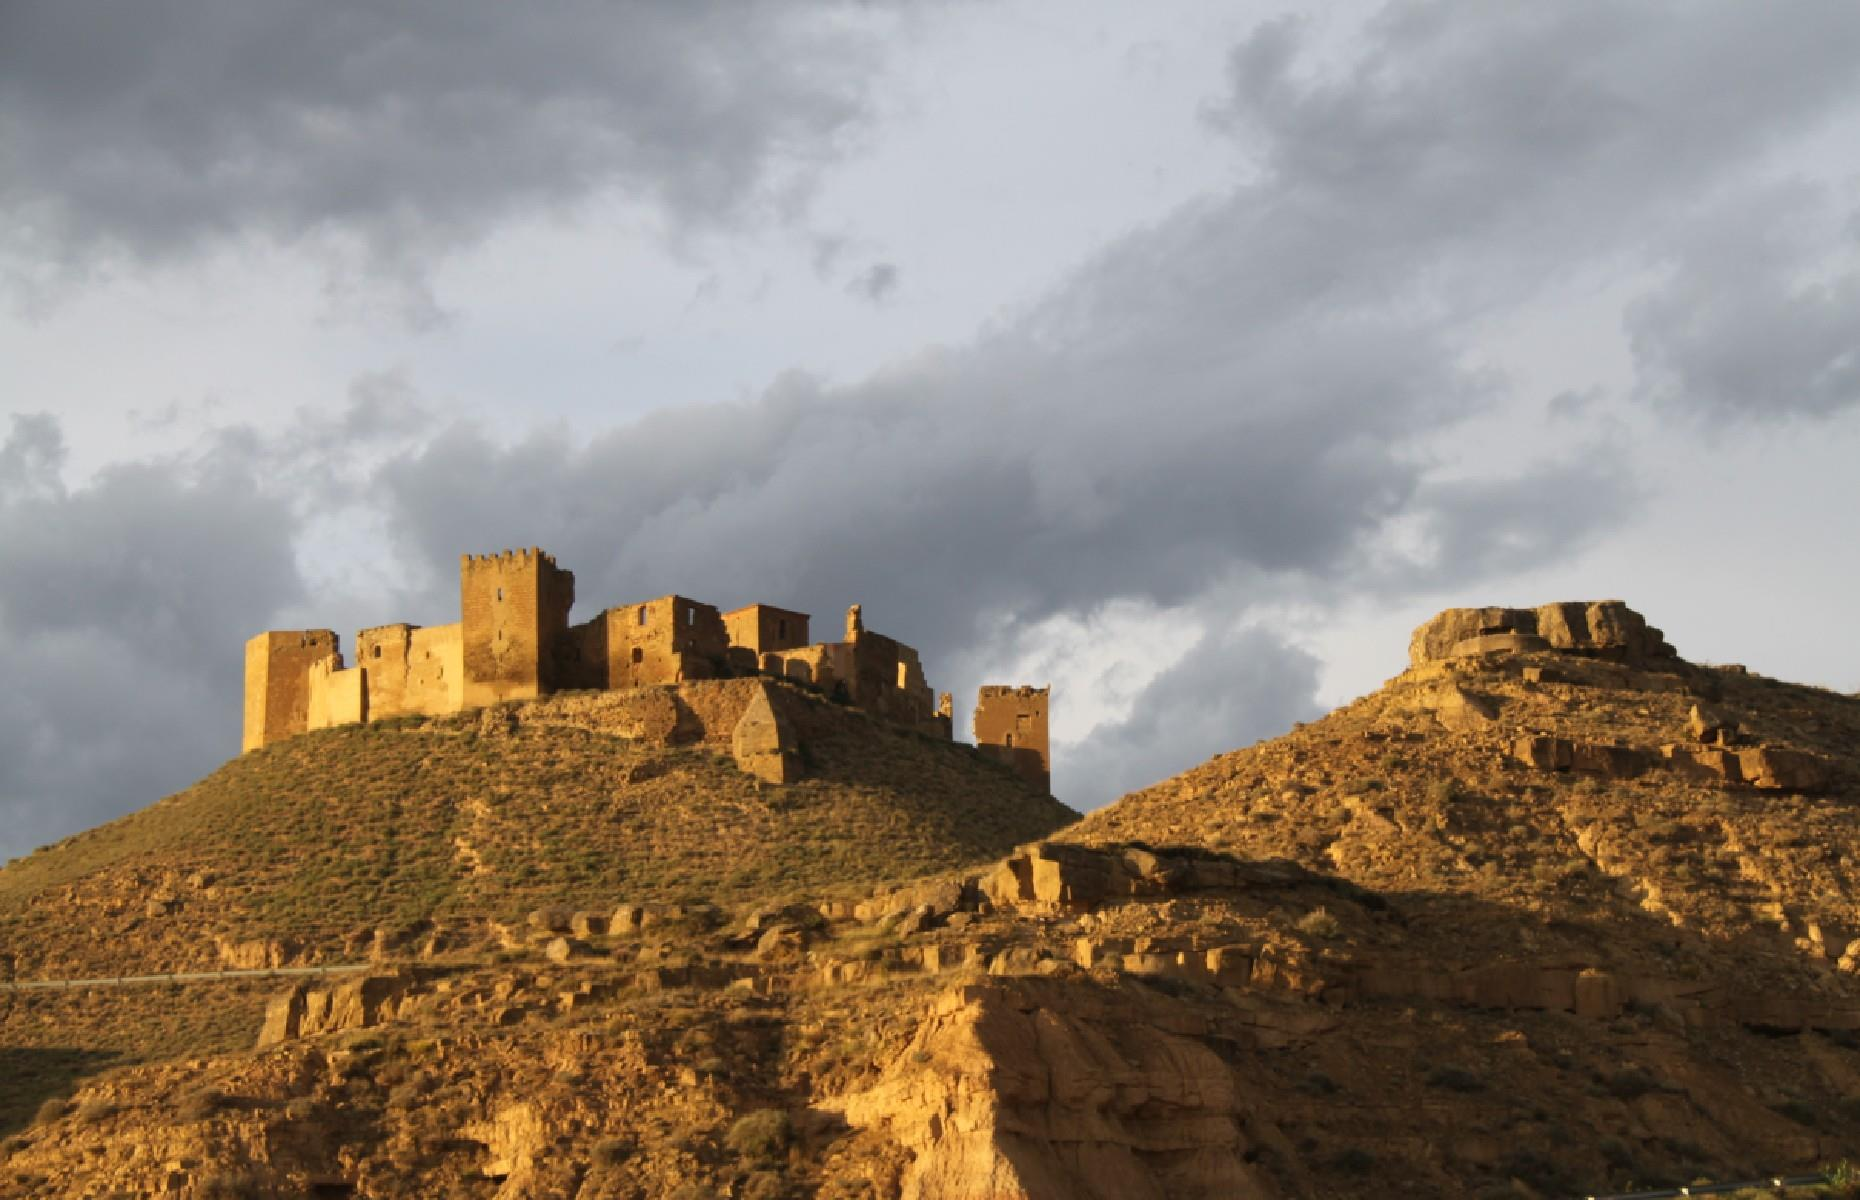 Slide 18 of 29: This 11th-century castle is visible for miles on its high vantage point overlooking the plains of Huesca, in Aragon, northern Spain. It was originally built to help conquer the then-Muslim area of Huesca but later was given over to Augustine monks who used it for seven centuries.